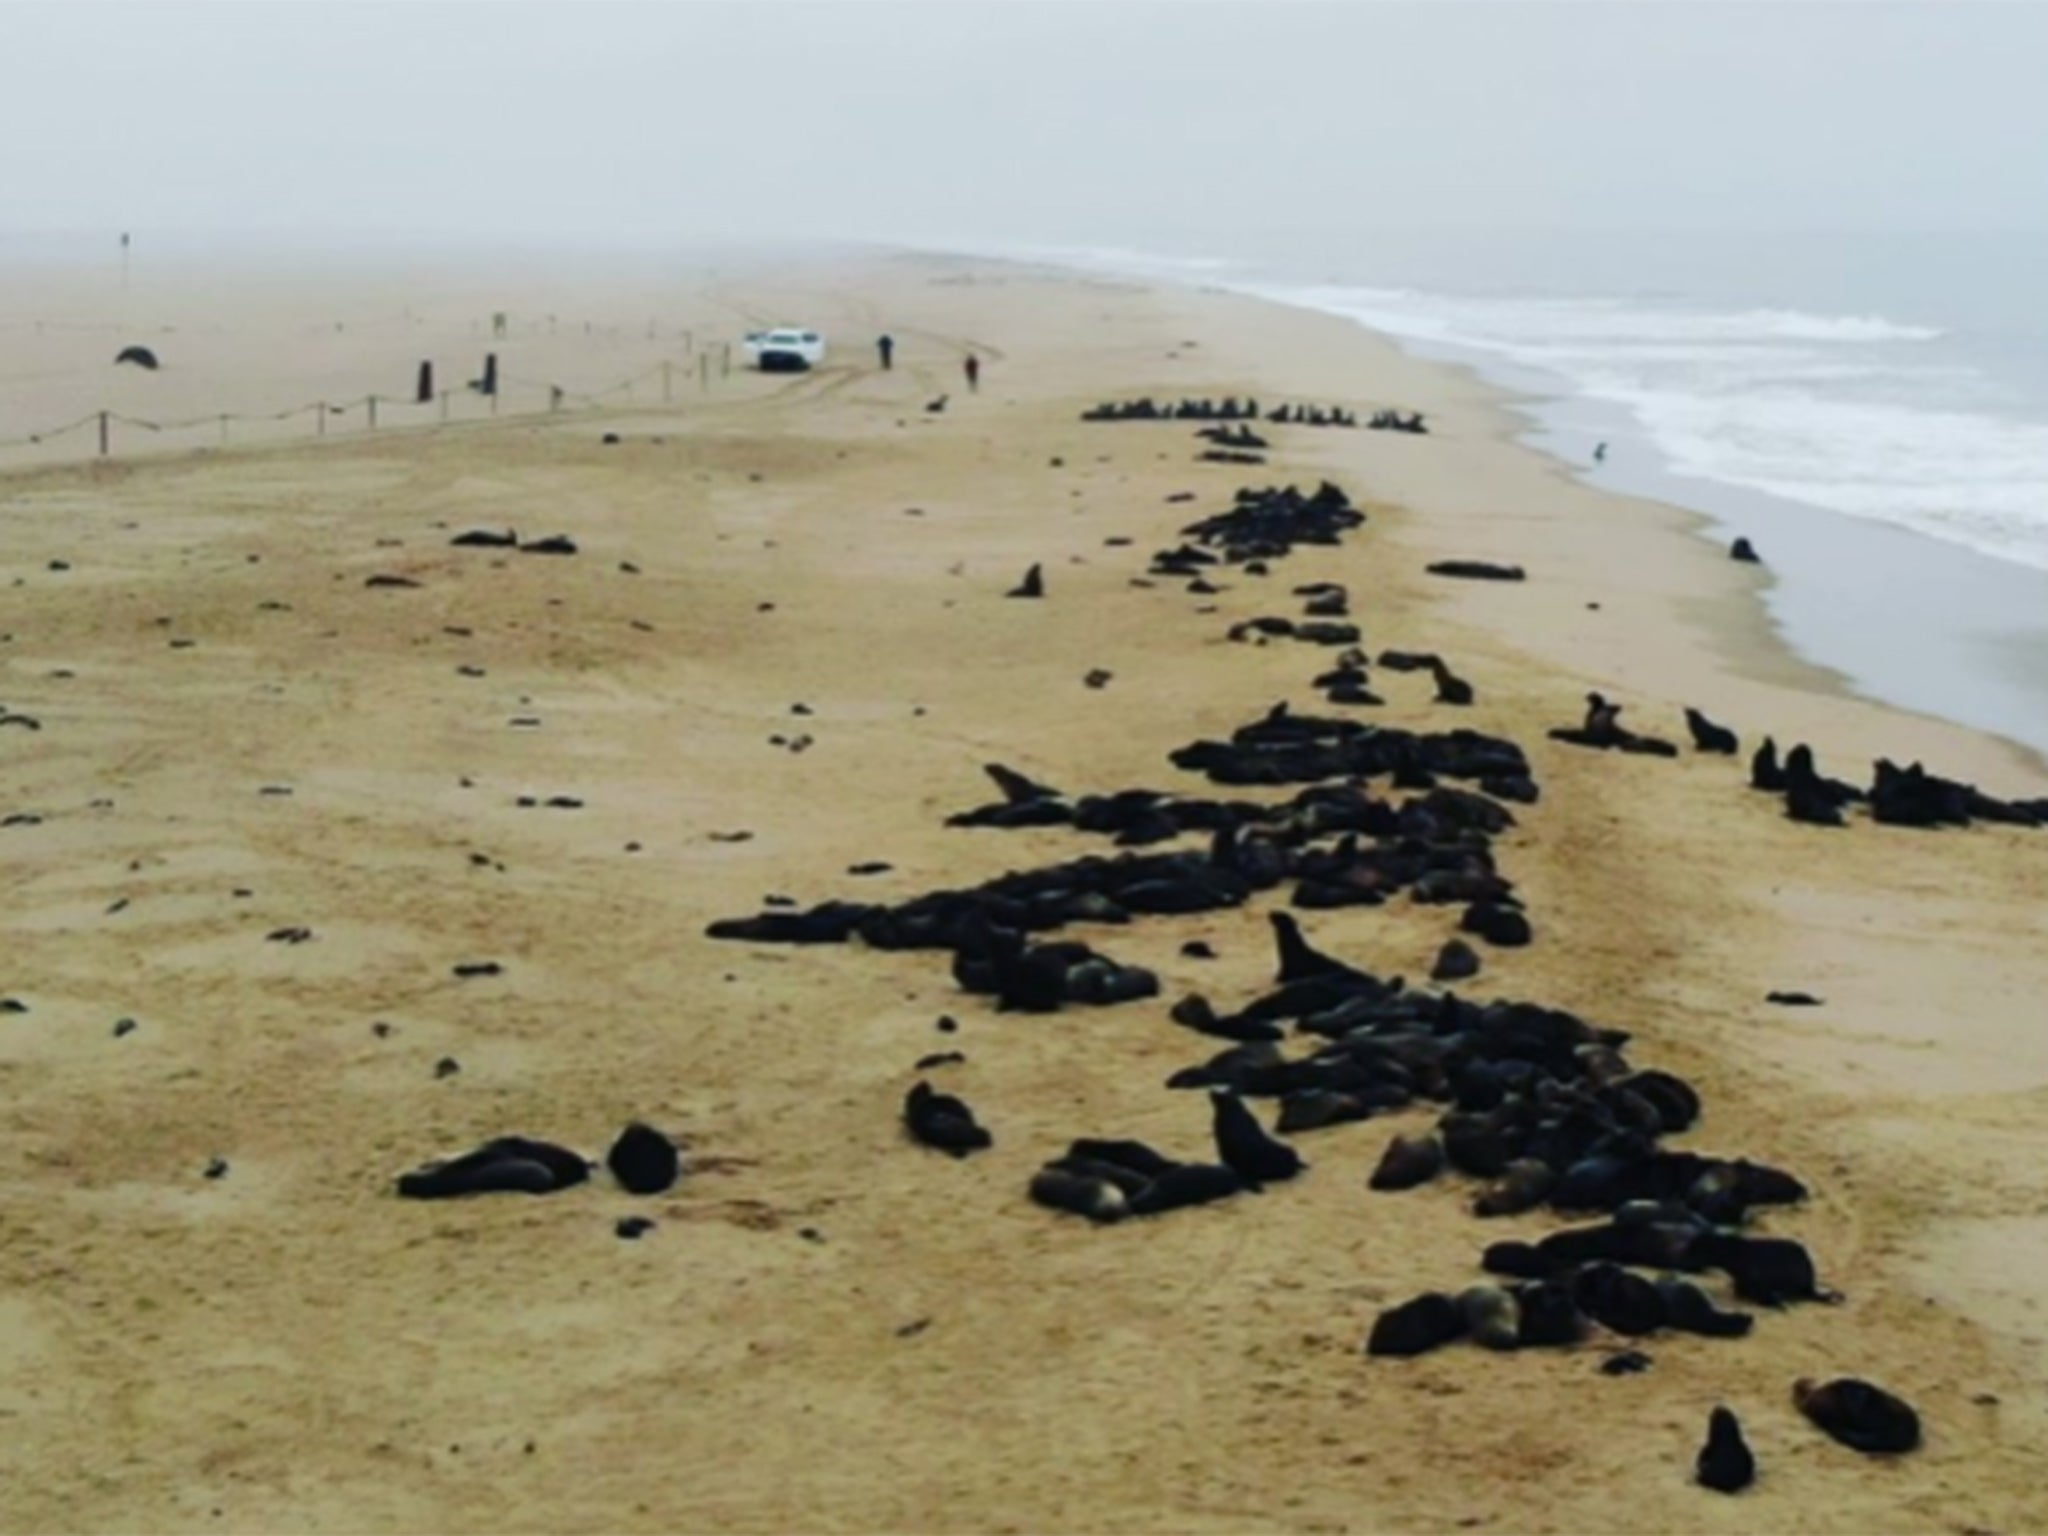 Thousands of seal pups discovered dead in mysterious mass die-off at colony in Namibia